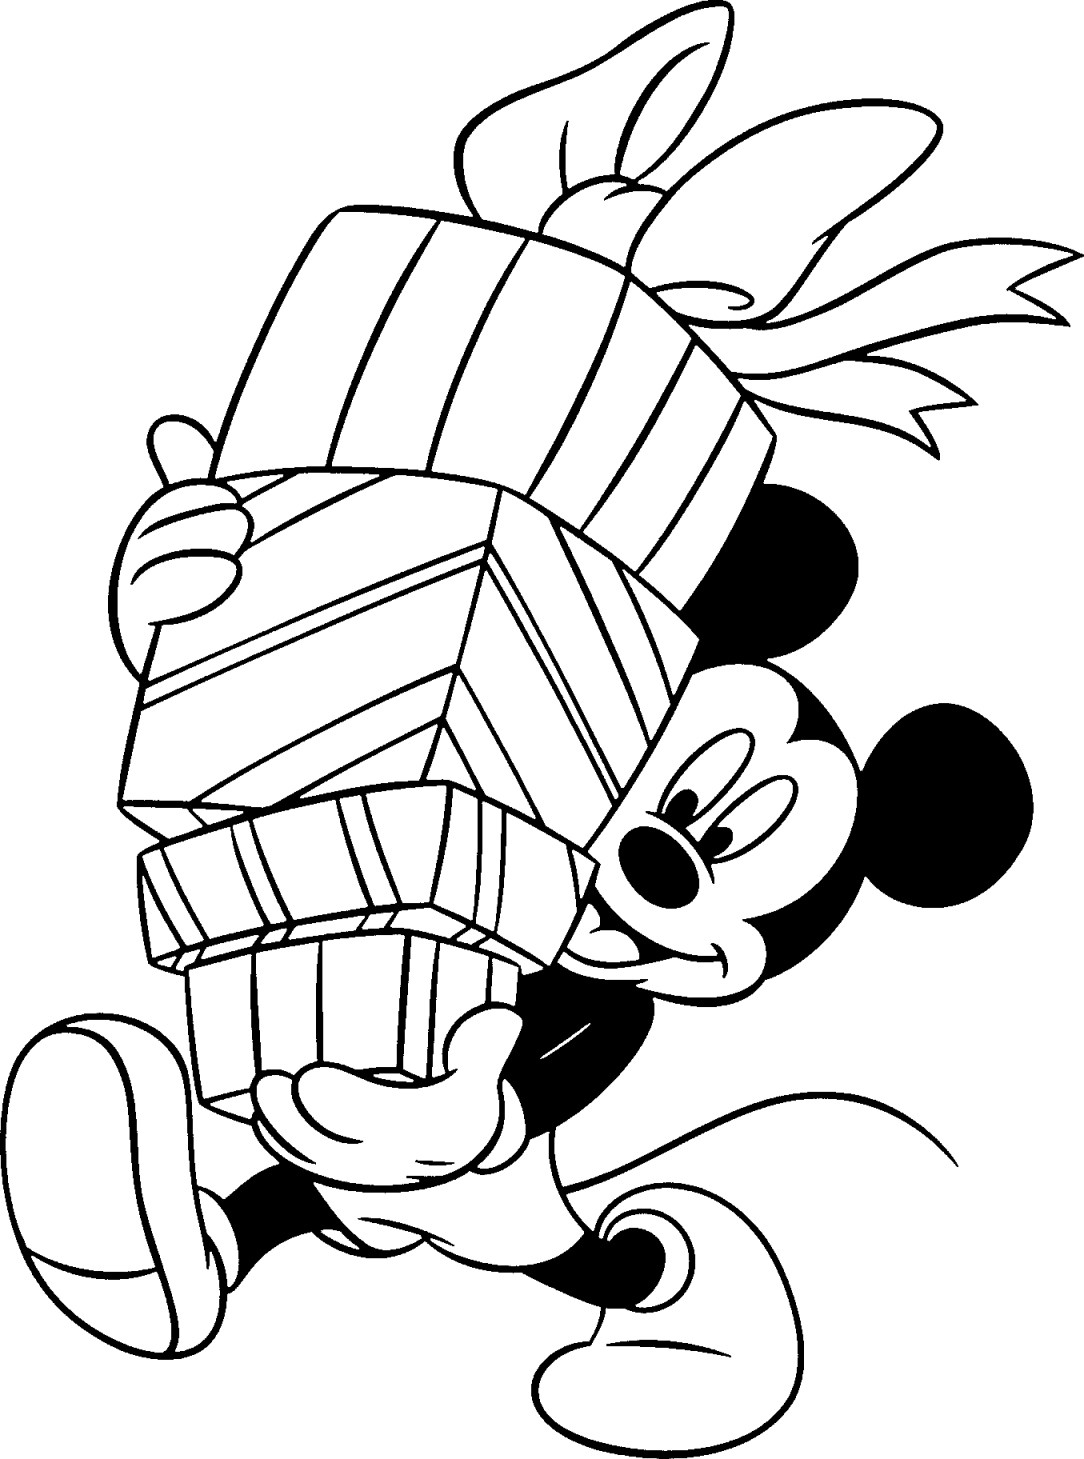 mickey birthday coloring pages baby mickey one cupcake birthday coloring page see the coloring mickey pages birthday